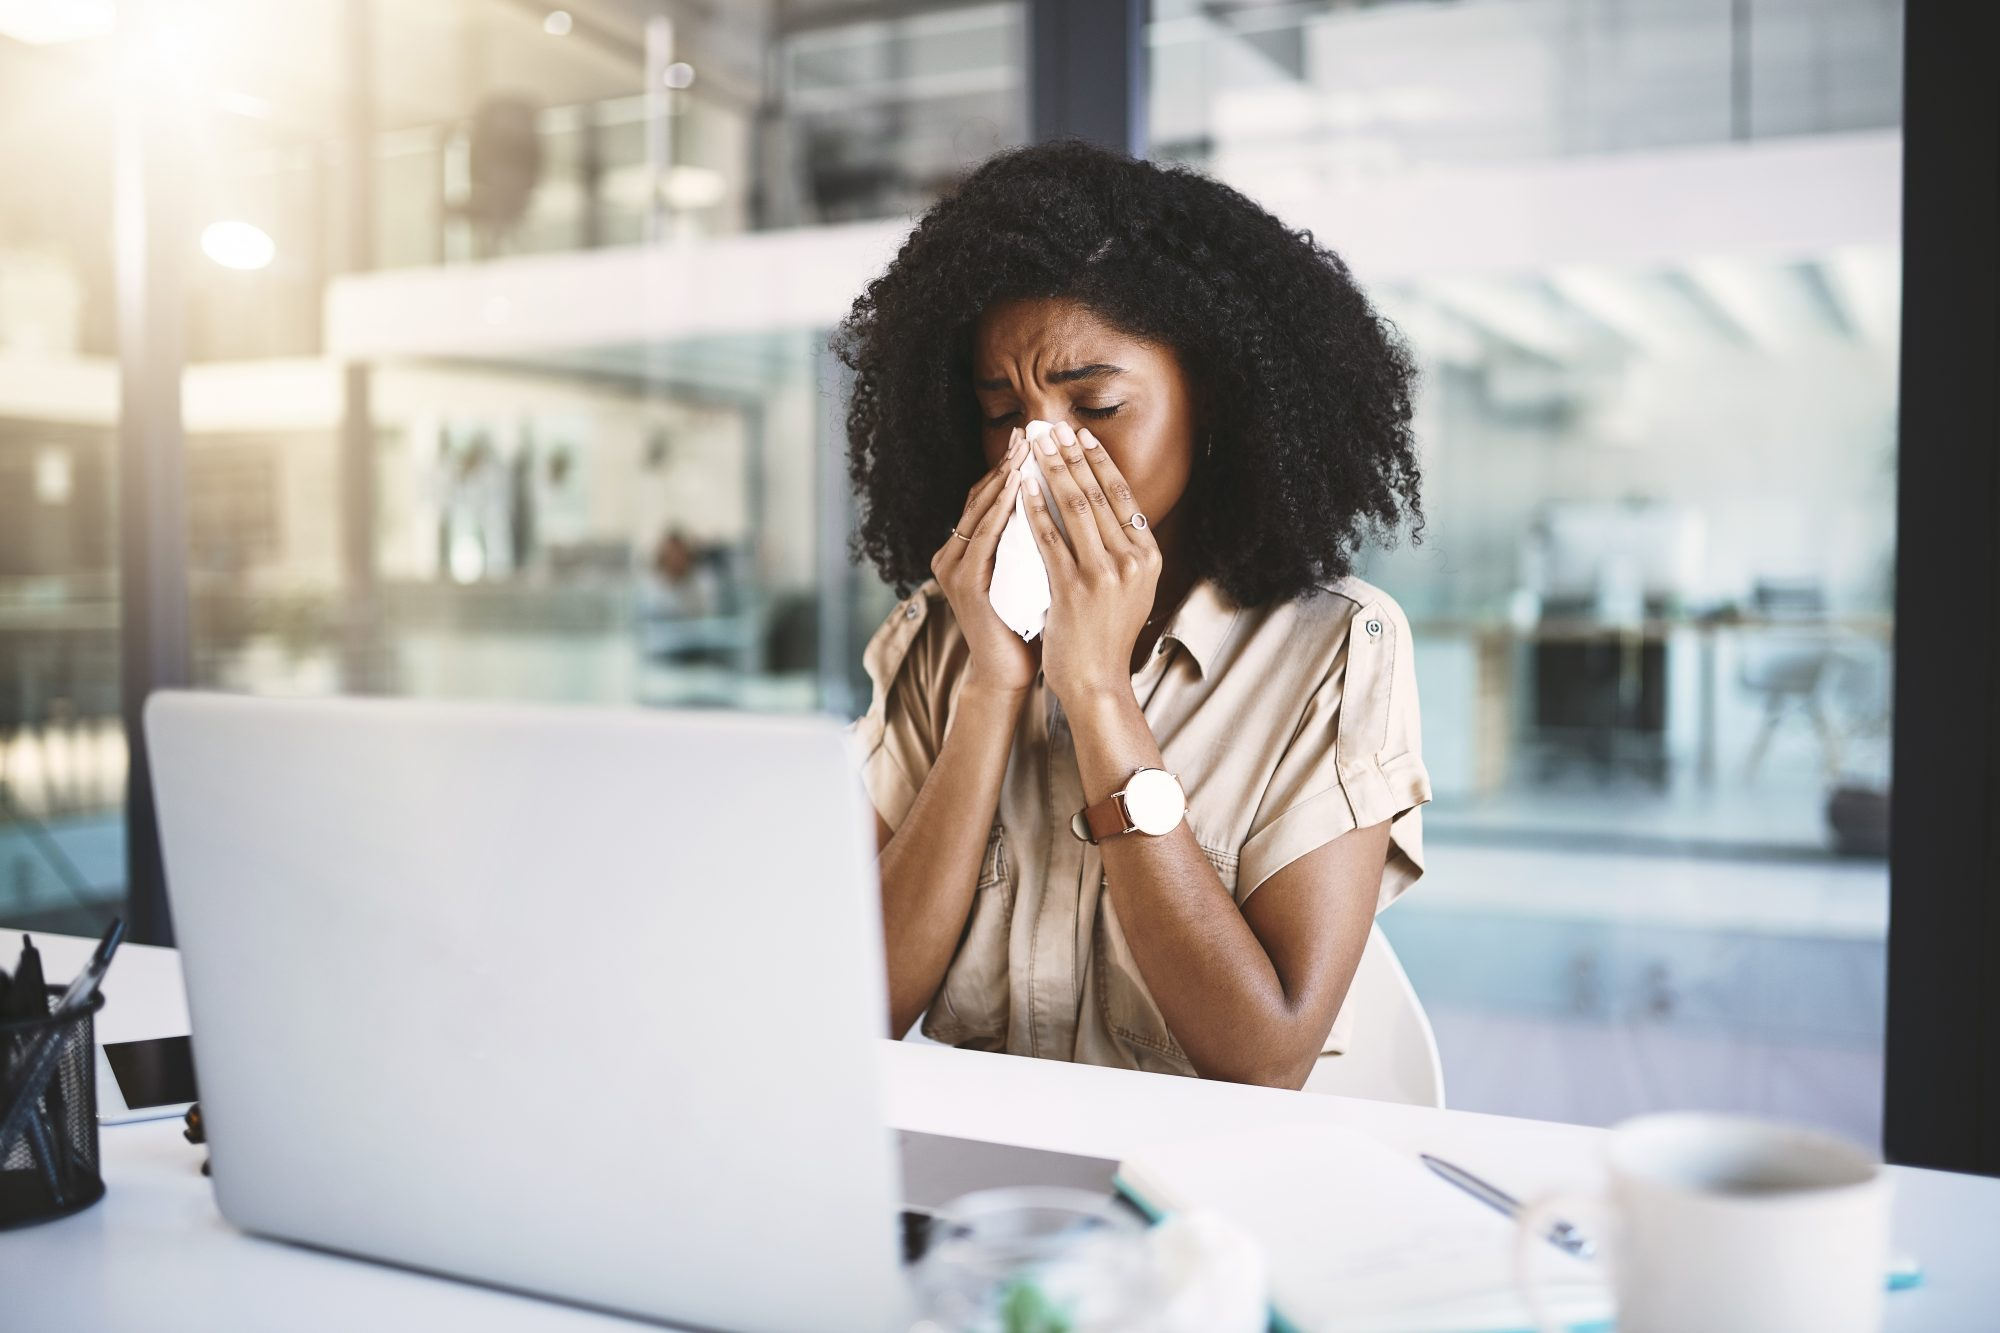 woman sneezing into tissue at desk